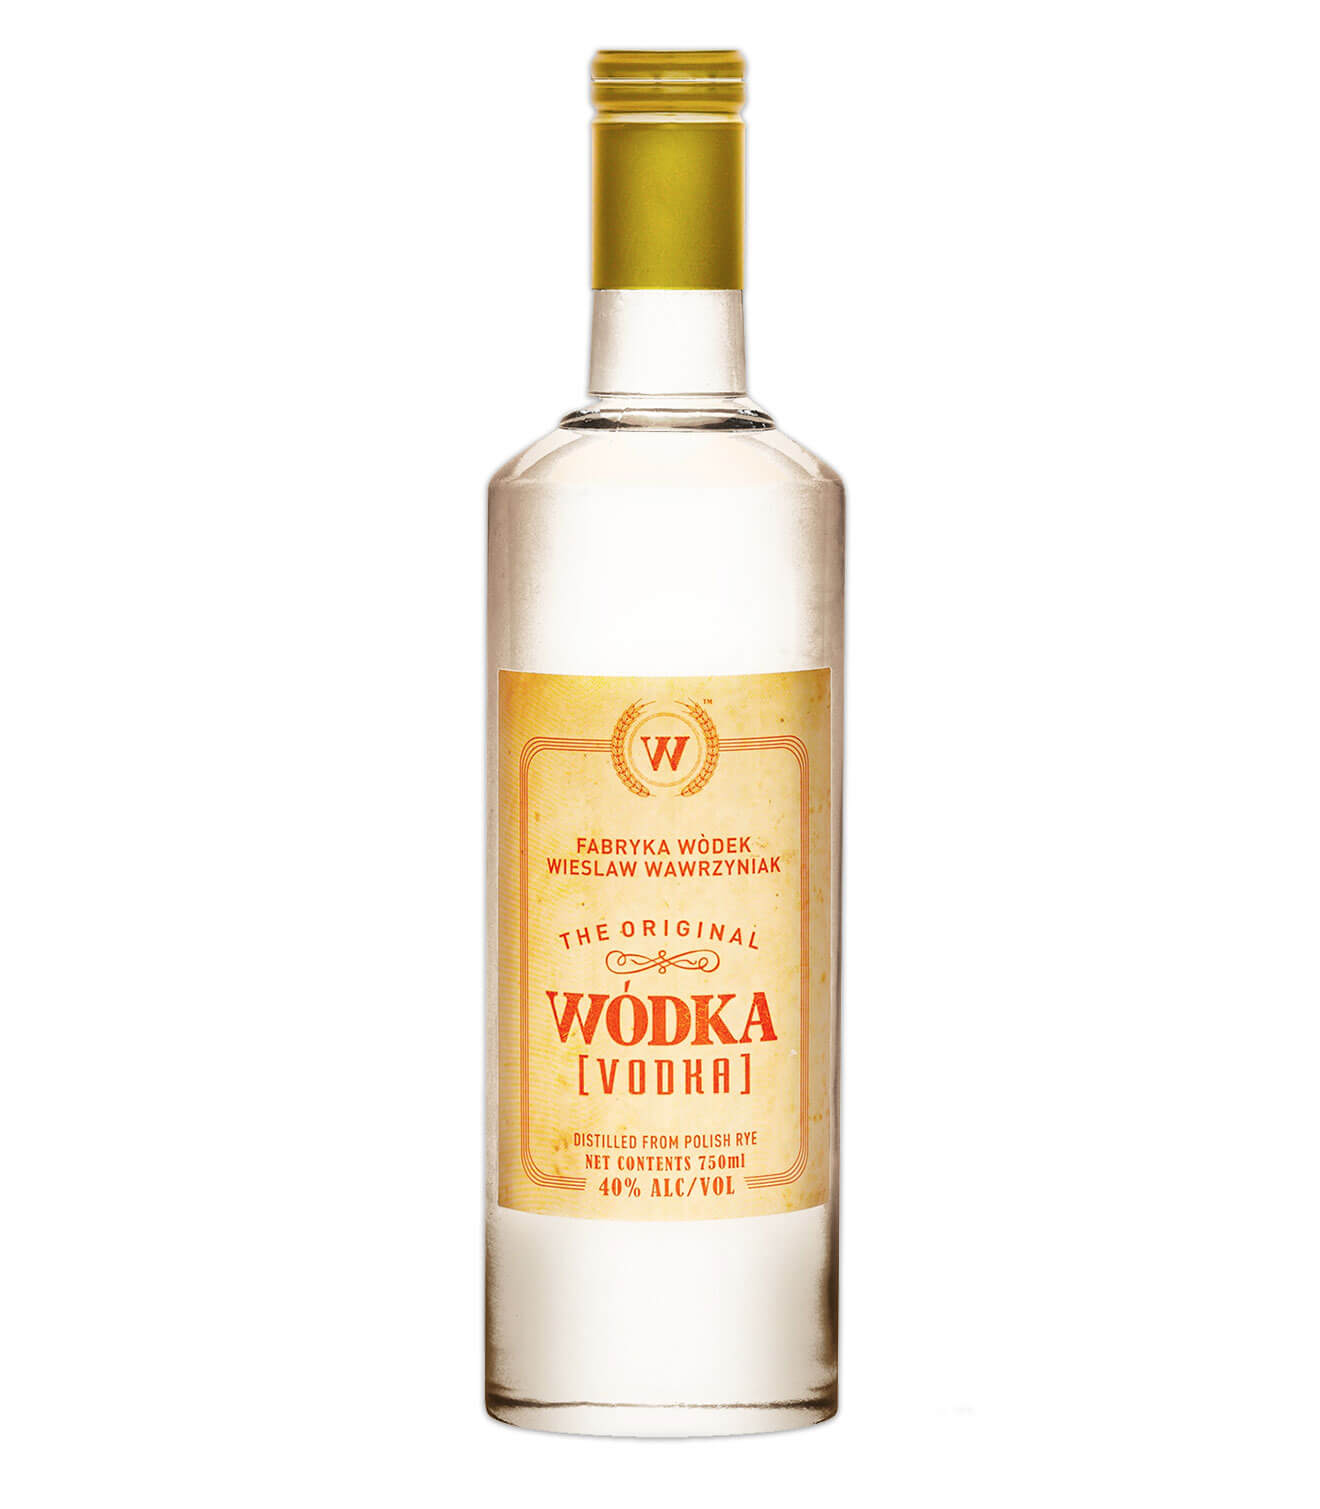 Wódka Vodka bottle on white